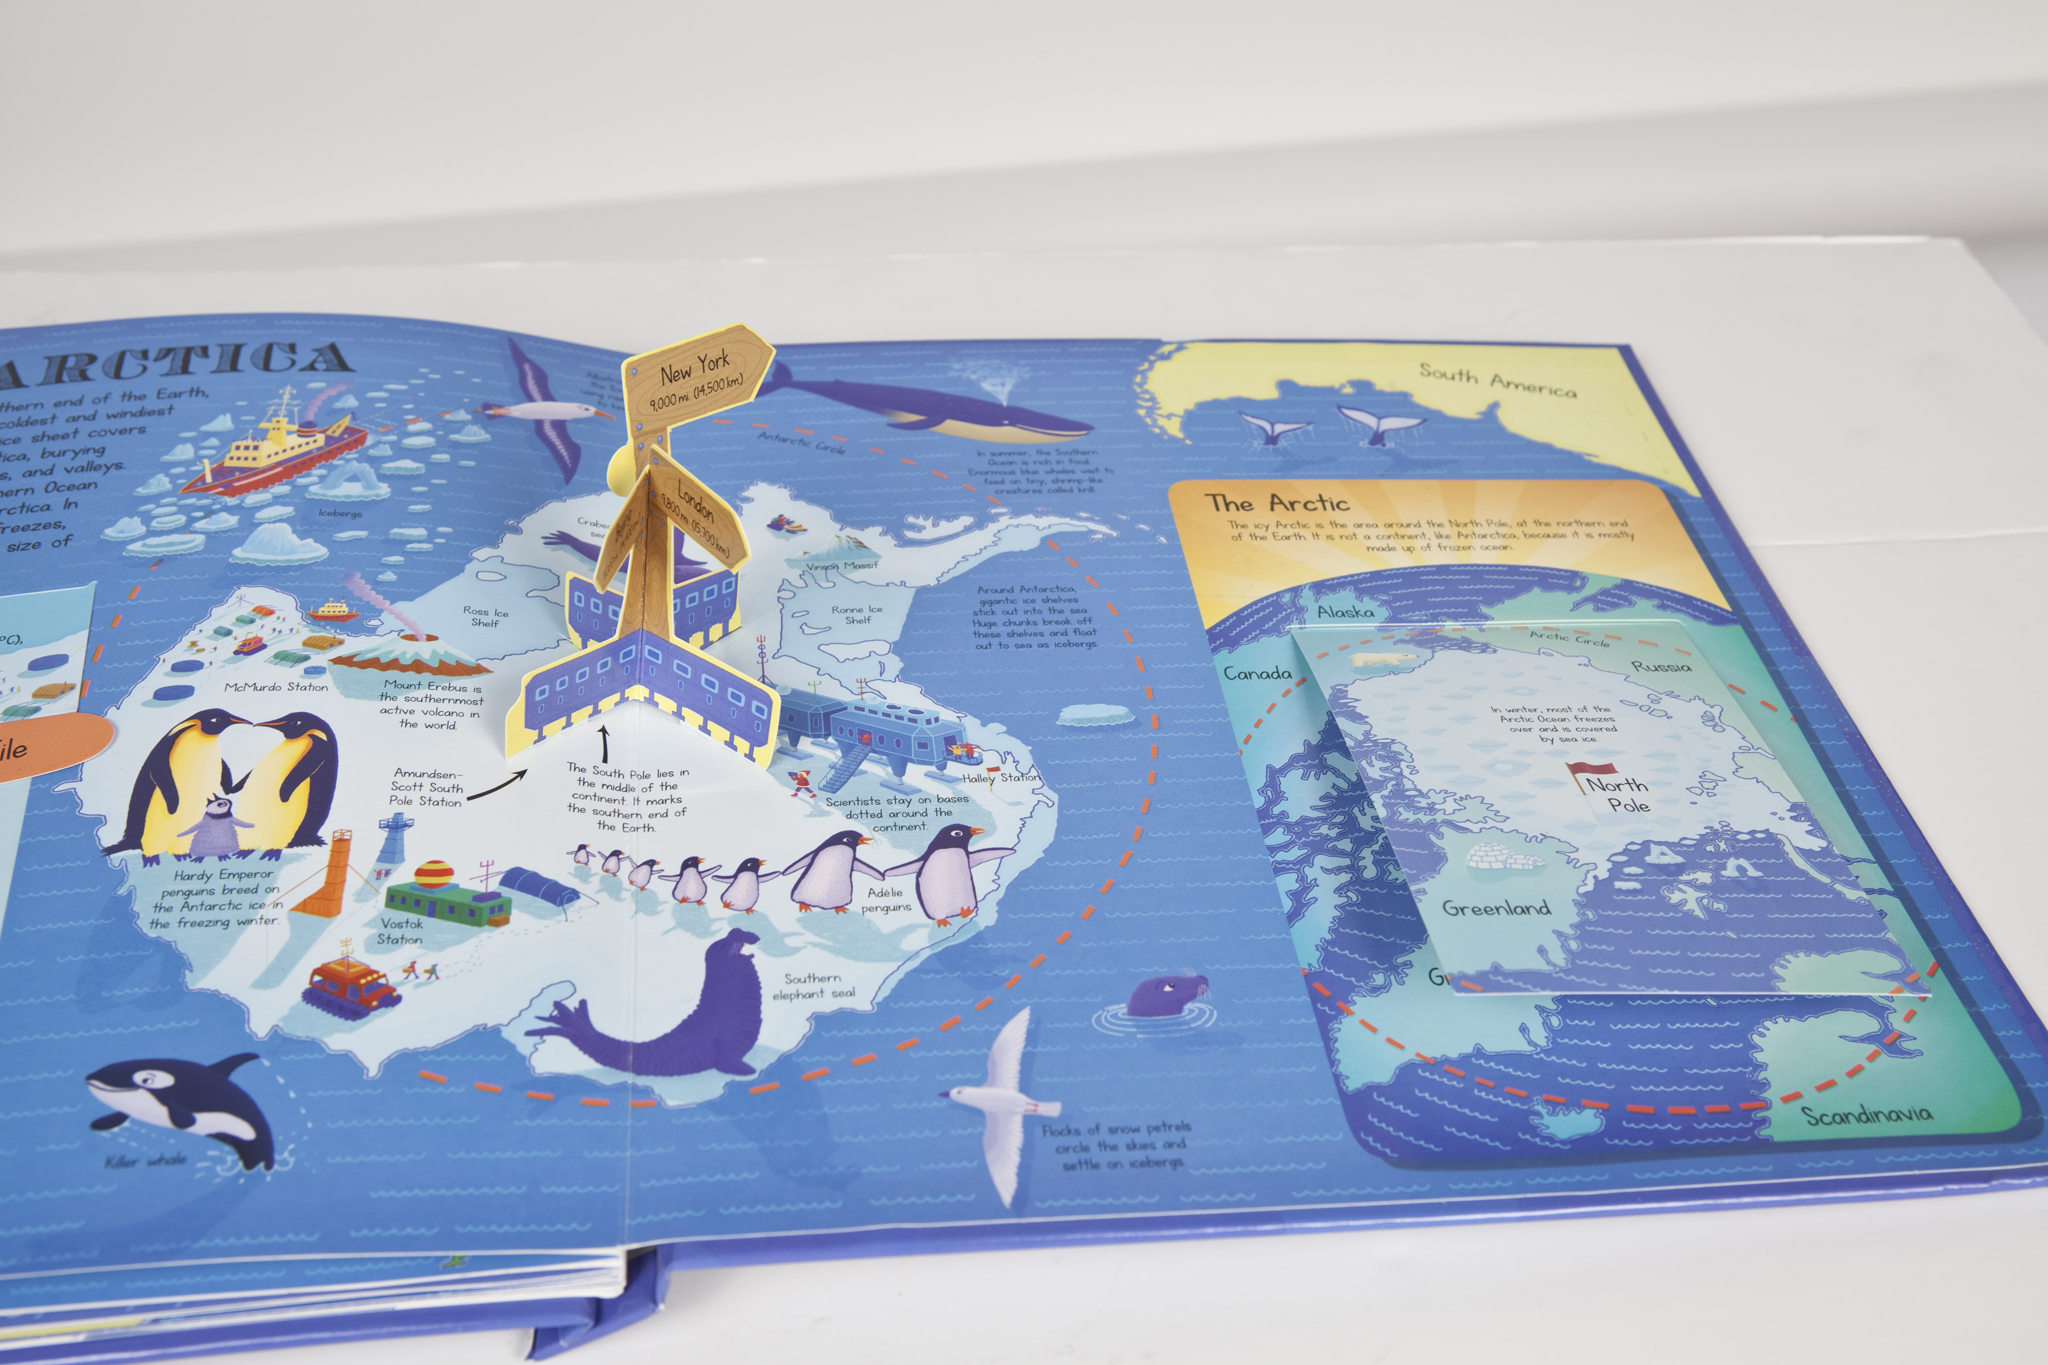 My Pop-Up World Atlas by Anita Ganeri and Stephen Waterhouse